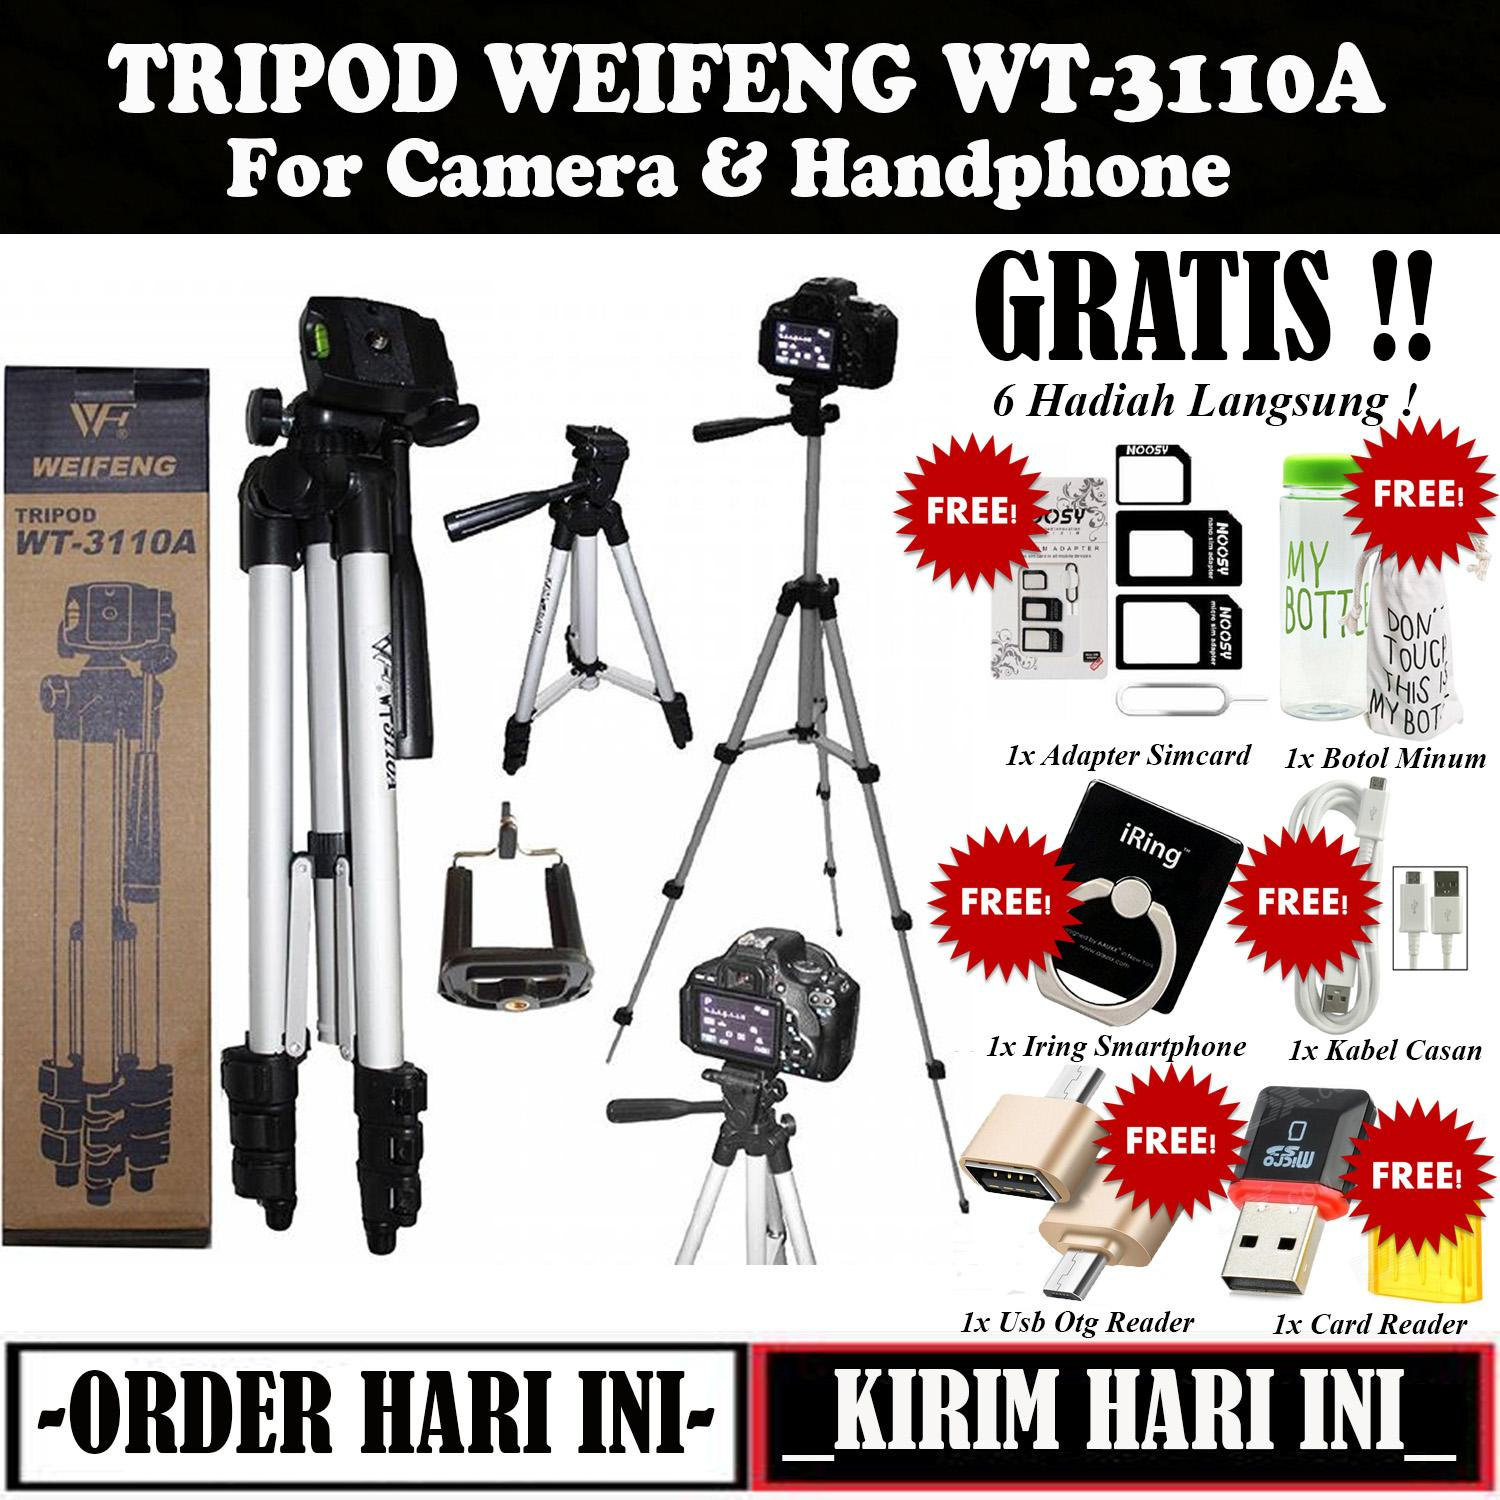 Weifeng 3110 Tripod Stainless with 3x Extend Leg - Suite For Smartphone & Camera - Black